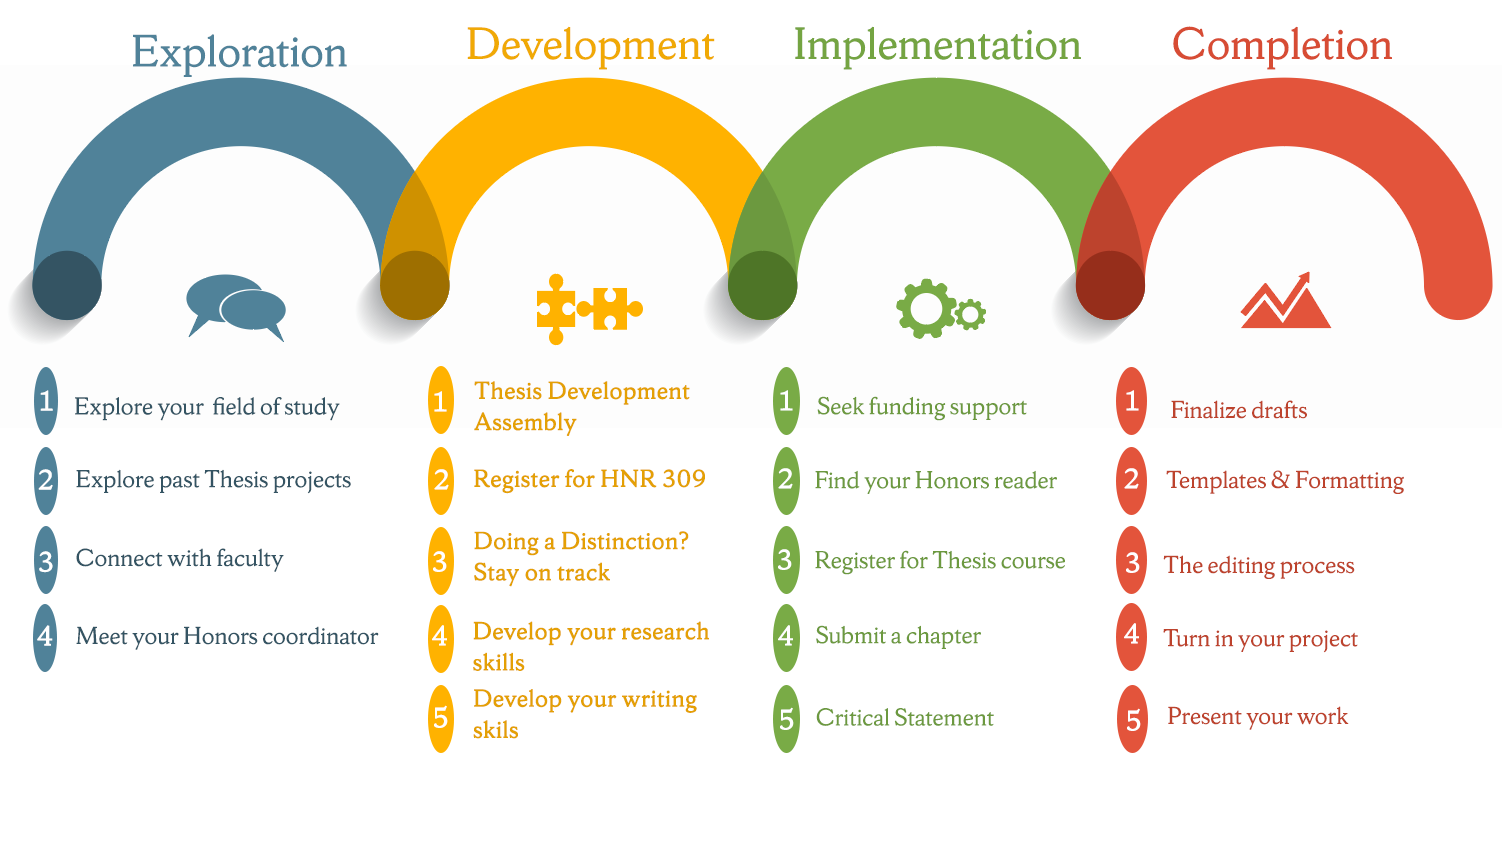 Steps of a thesis include: Exploration, Development, Implementation, Completion